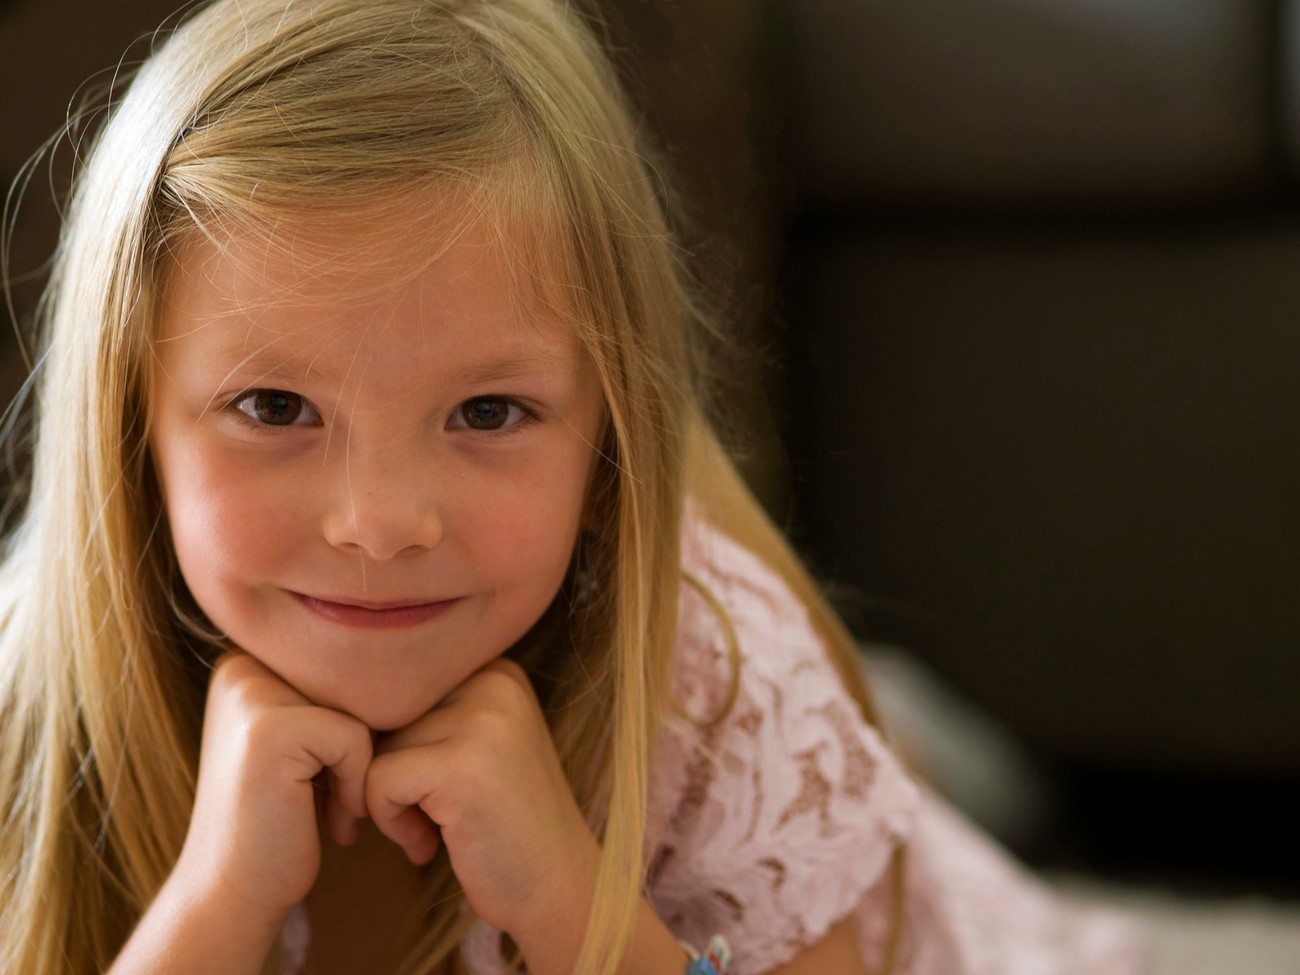 my great niece helping me out with my portrait photography